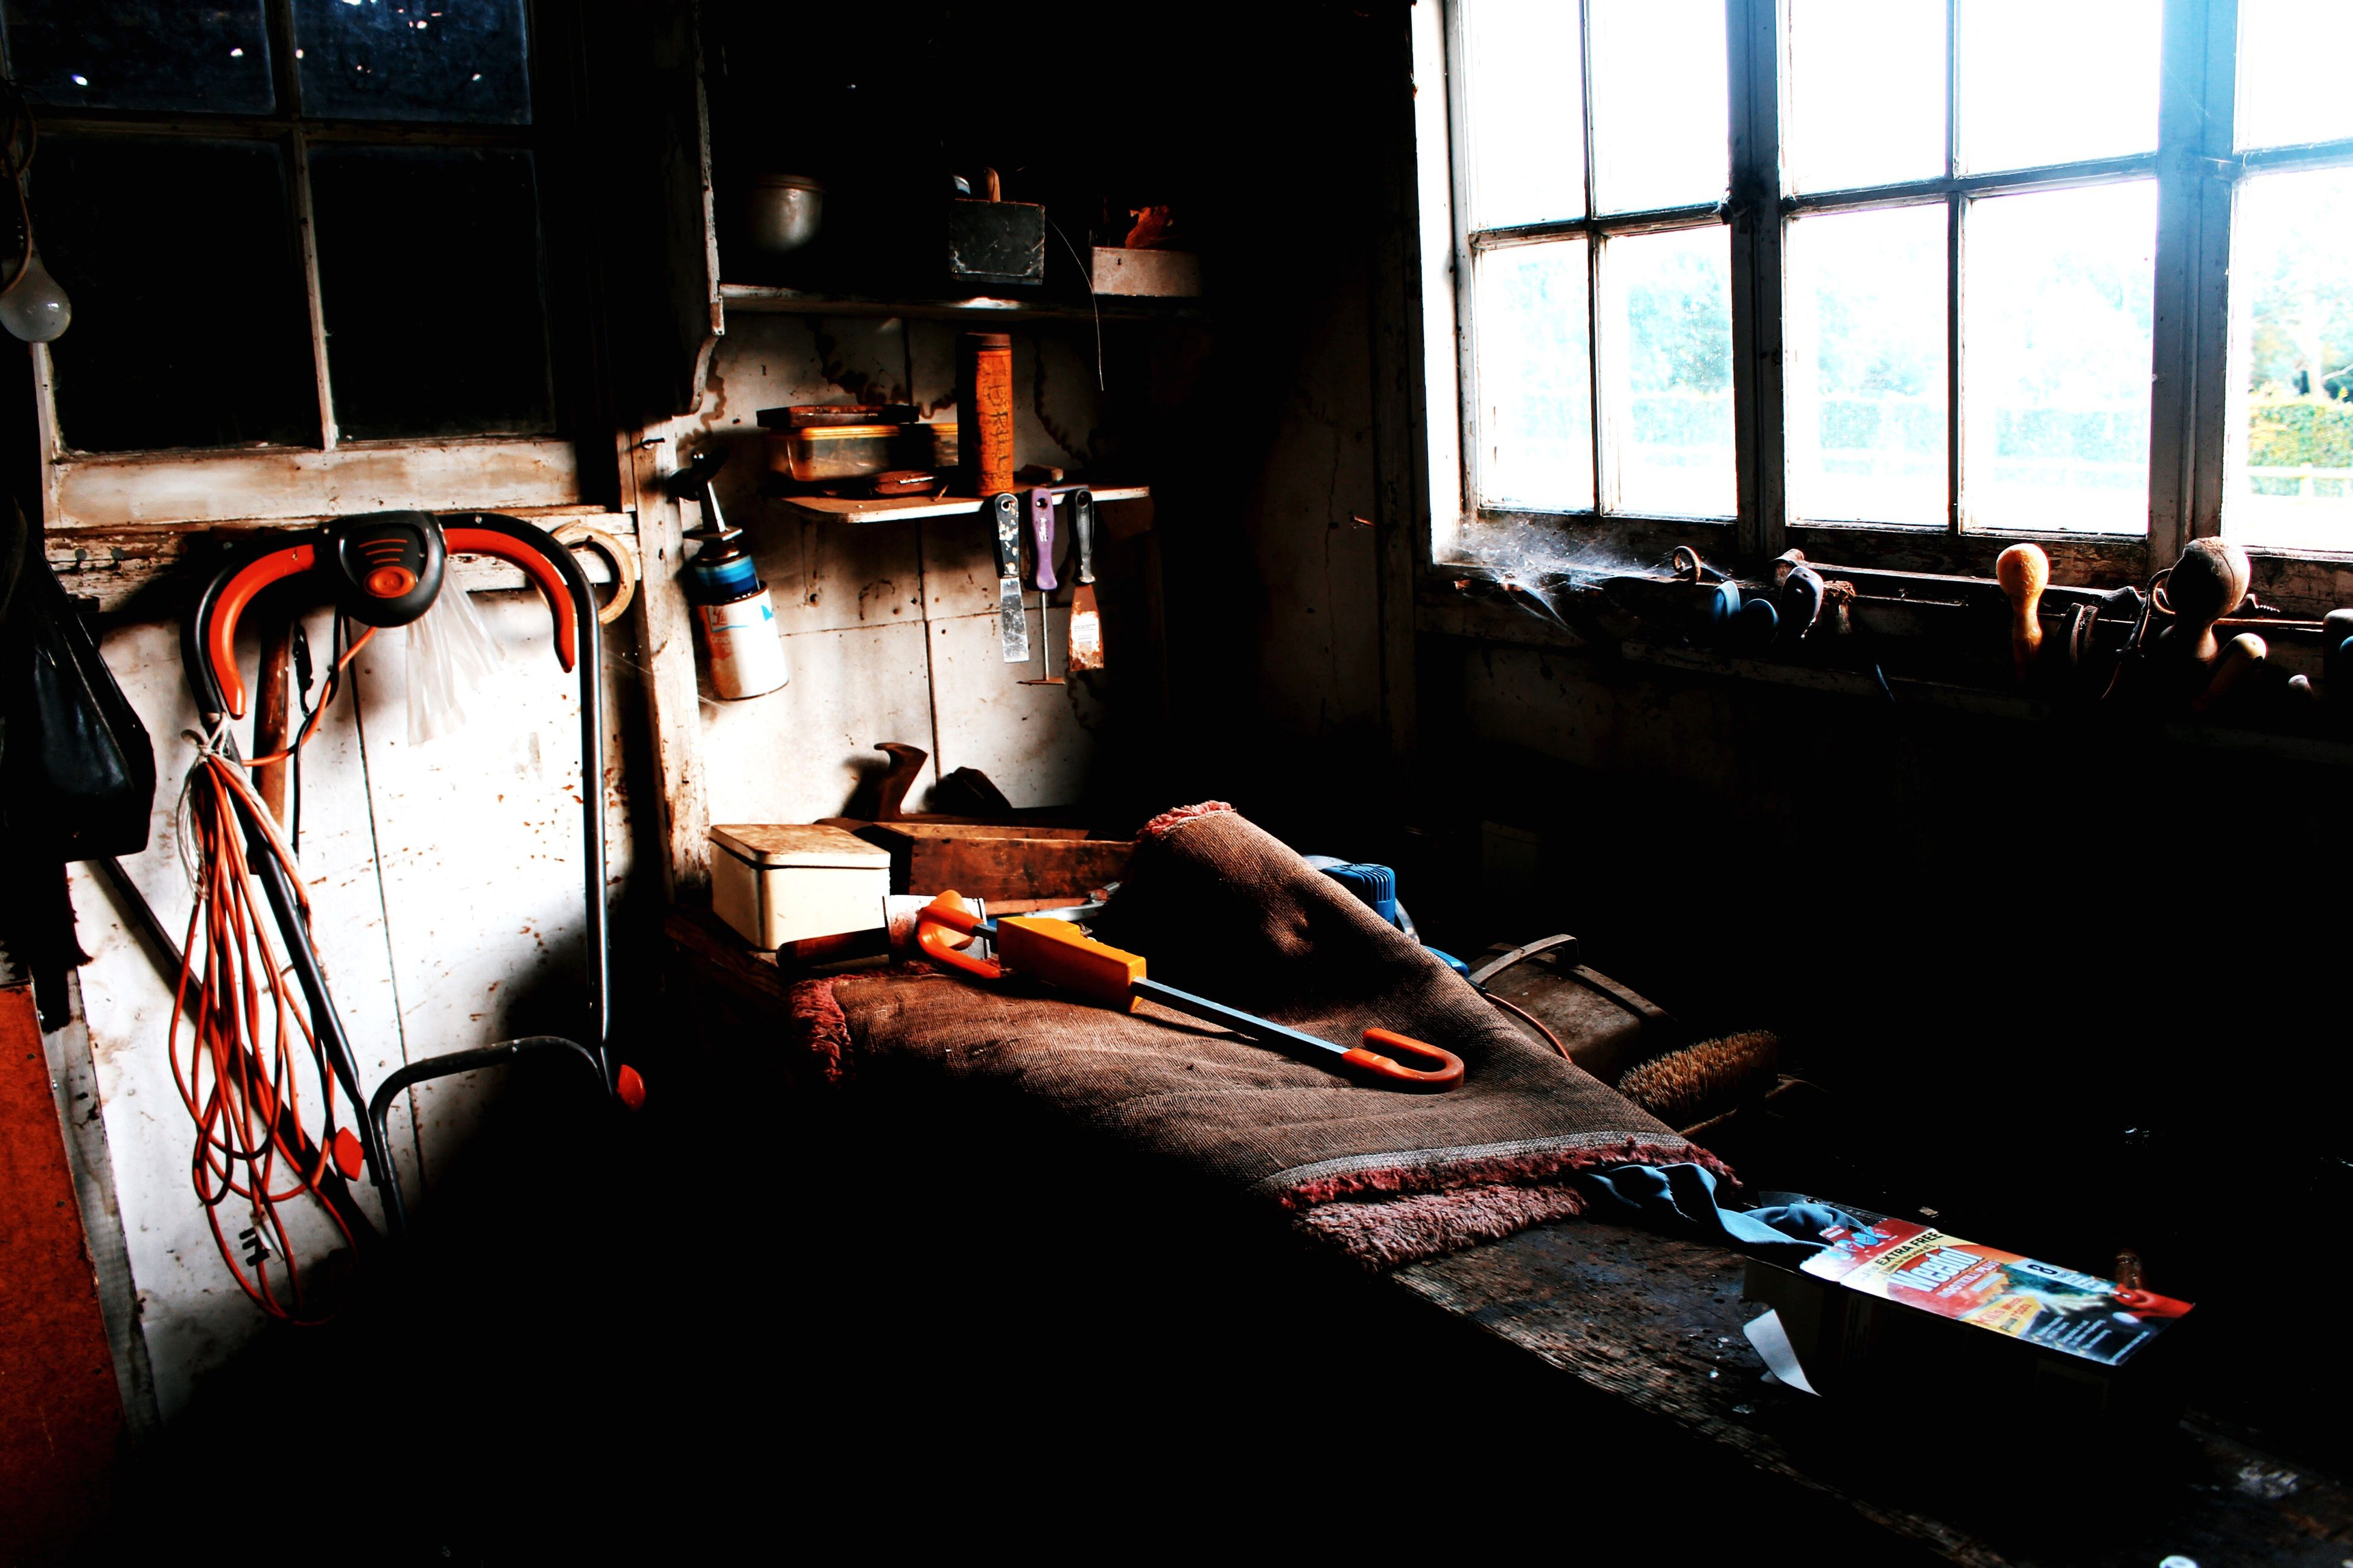 indoors, window, sofa, messy, home interior, obsolete, domestic life, dirty, group of objects, interior, day, place of work